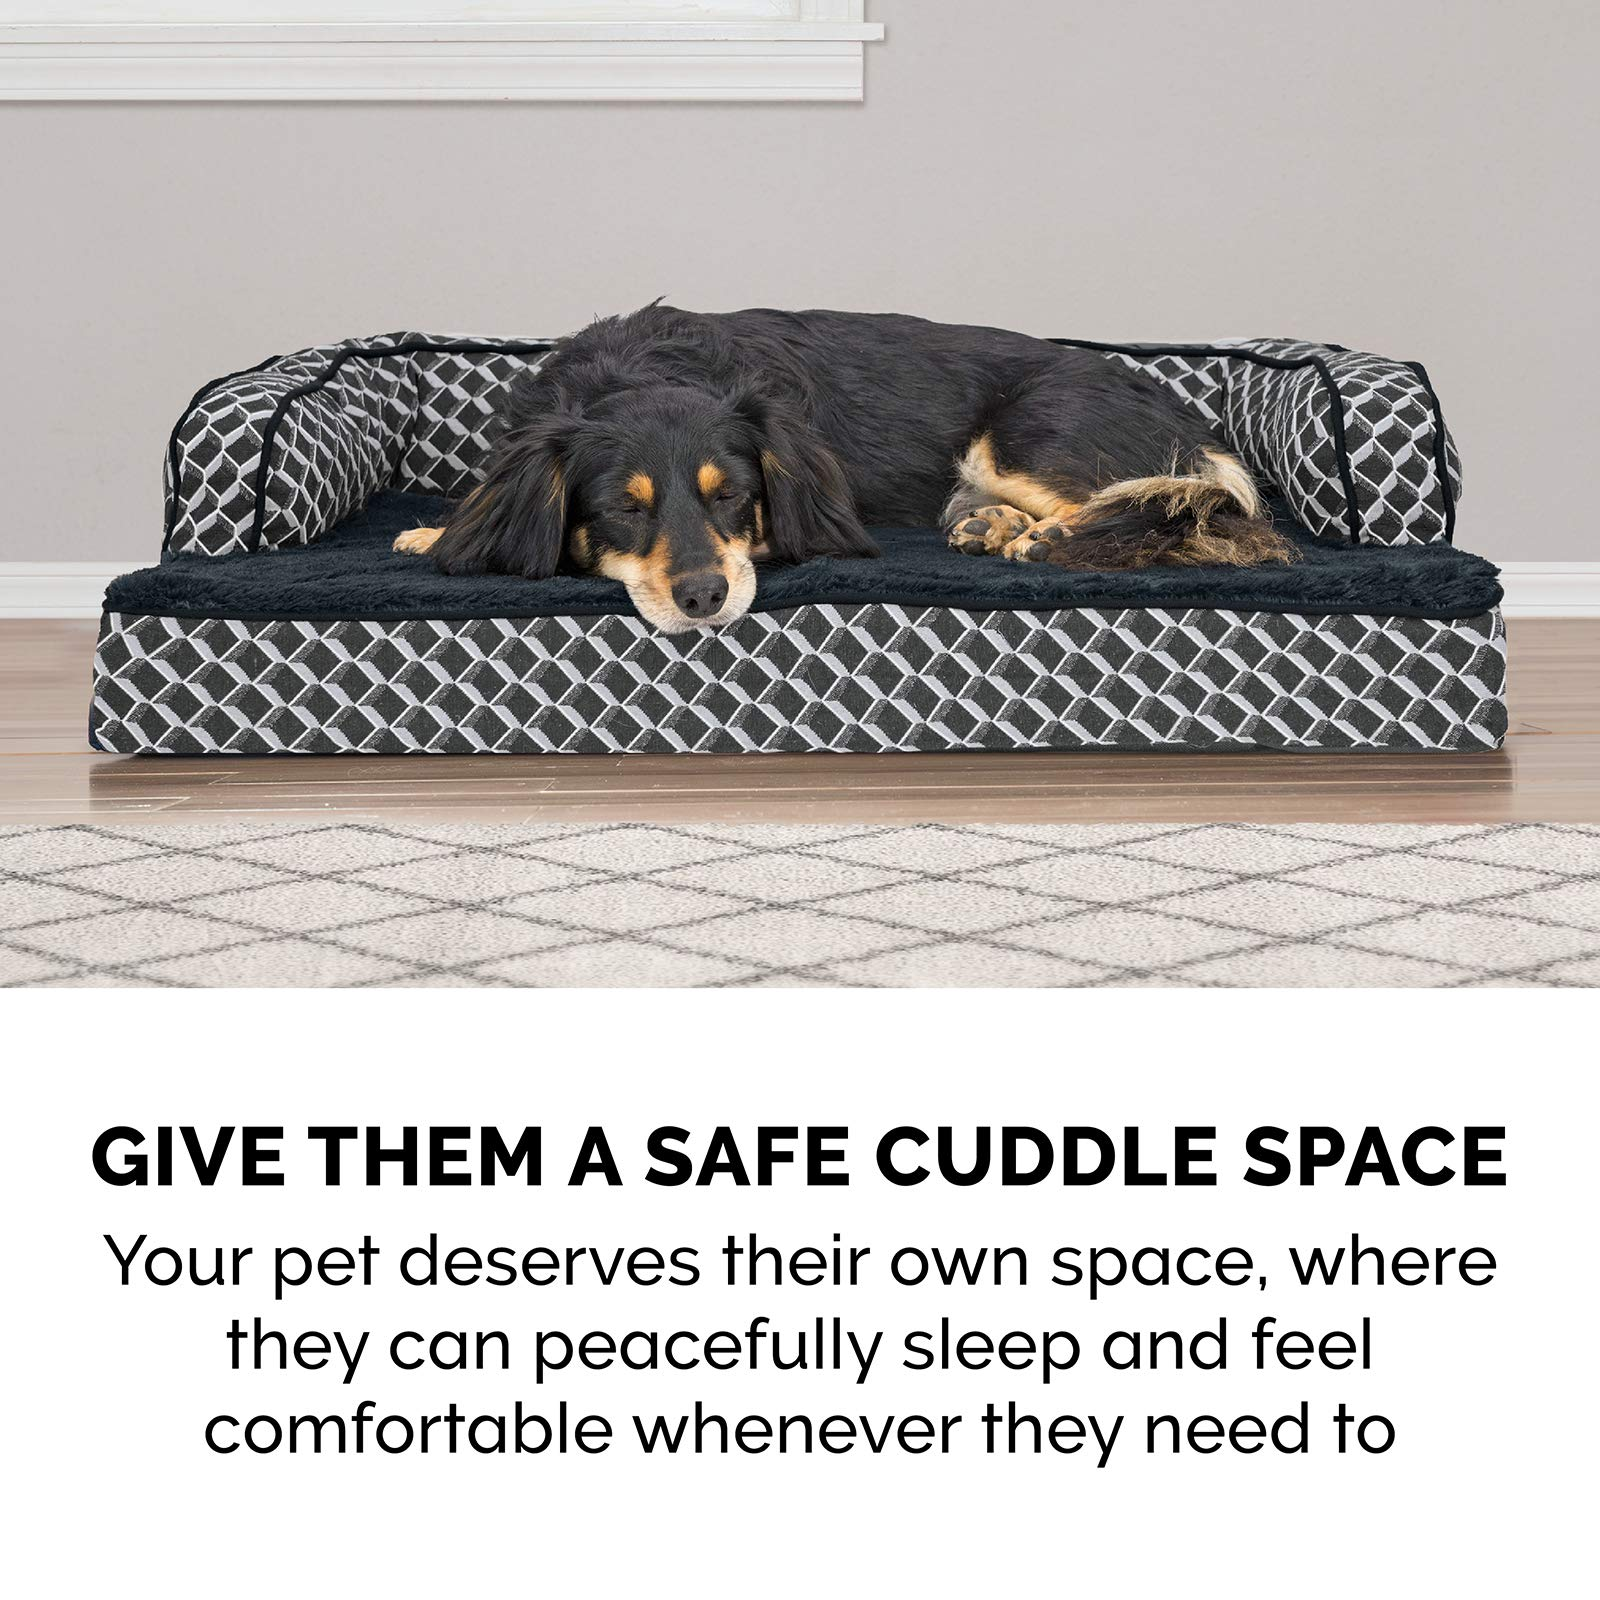 FurHaven Pet Dog Bed | Orthopedic Plush & Décor Comfy Couch Sofa-Style Pet Bed for Dogs & Cats, Diamond Gray, Jumbo by Furhaven Pet (Image #10)